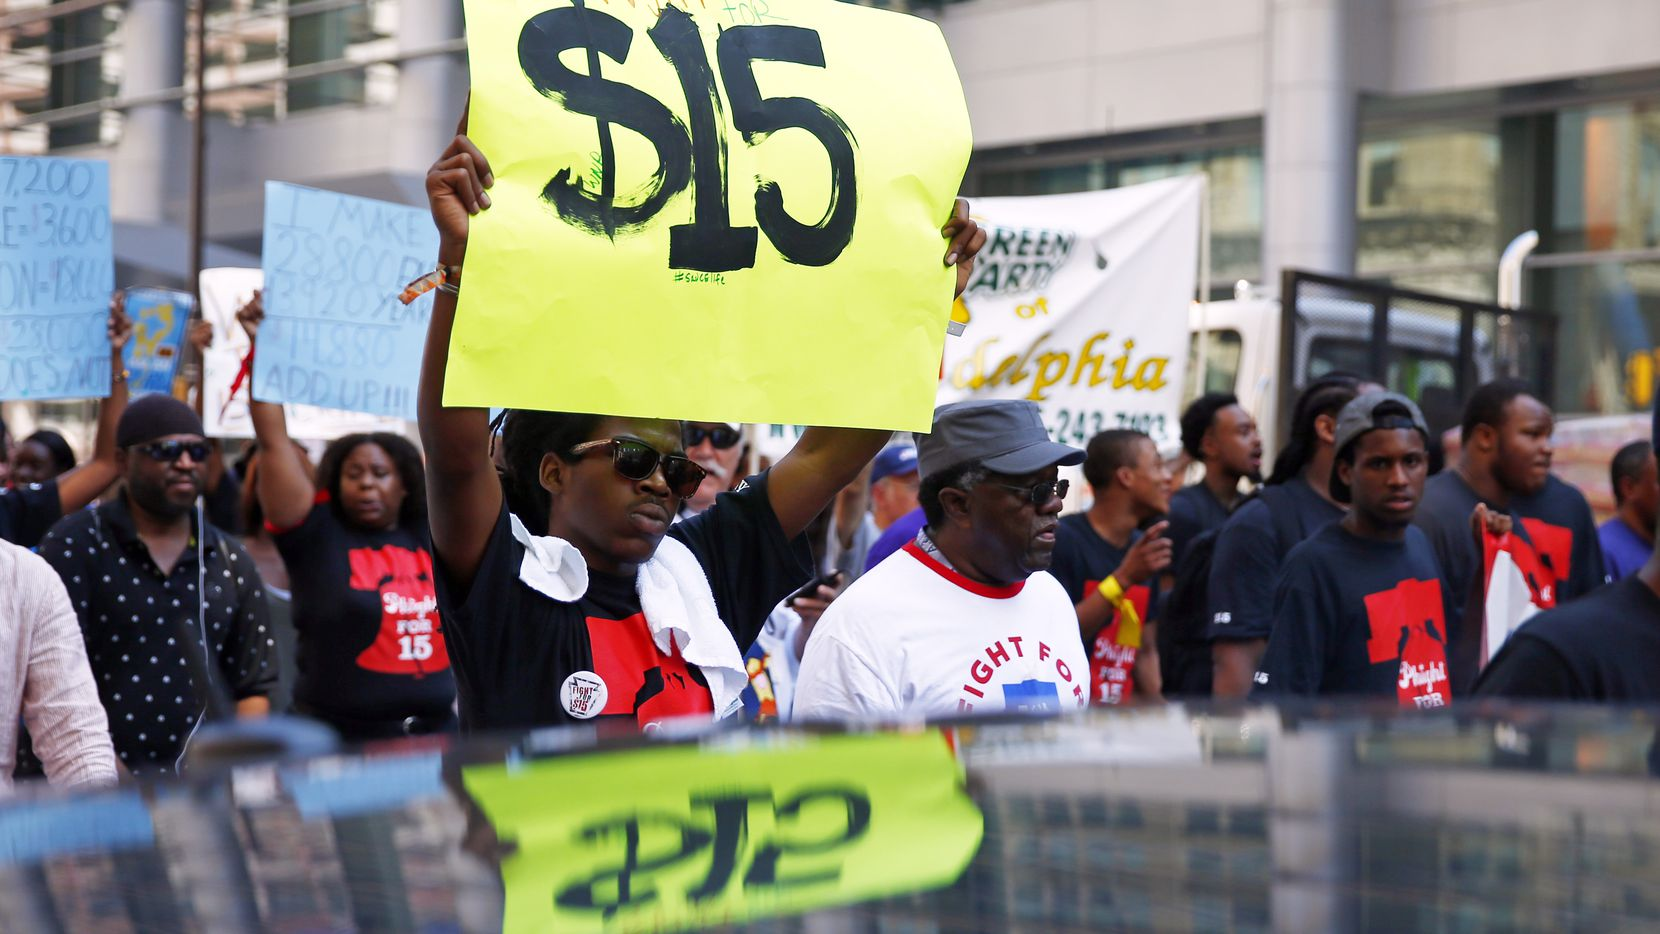 """The """"Fight for $15"""" movement, captured in this 2014 file photo from Philadelphia, has helped to increase the minimum wage in many states and cities — but not Texas. More workers in Texas would benefit from a $15 wage floor than in any state, according to one study."""